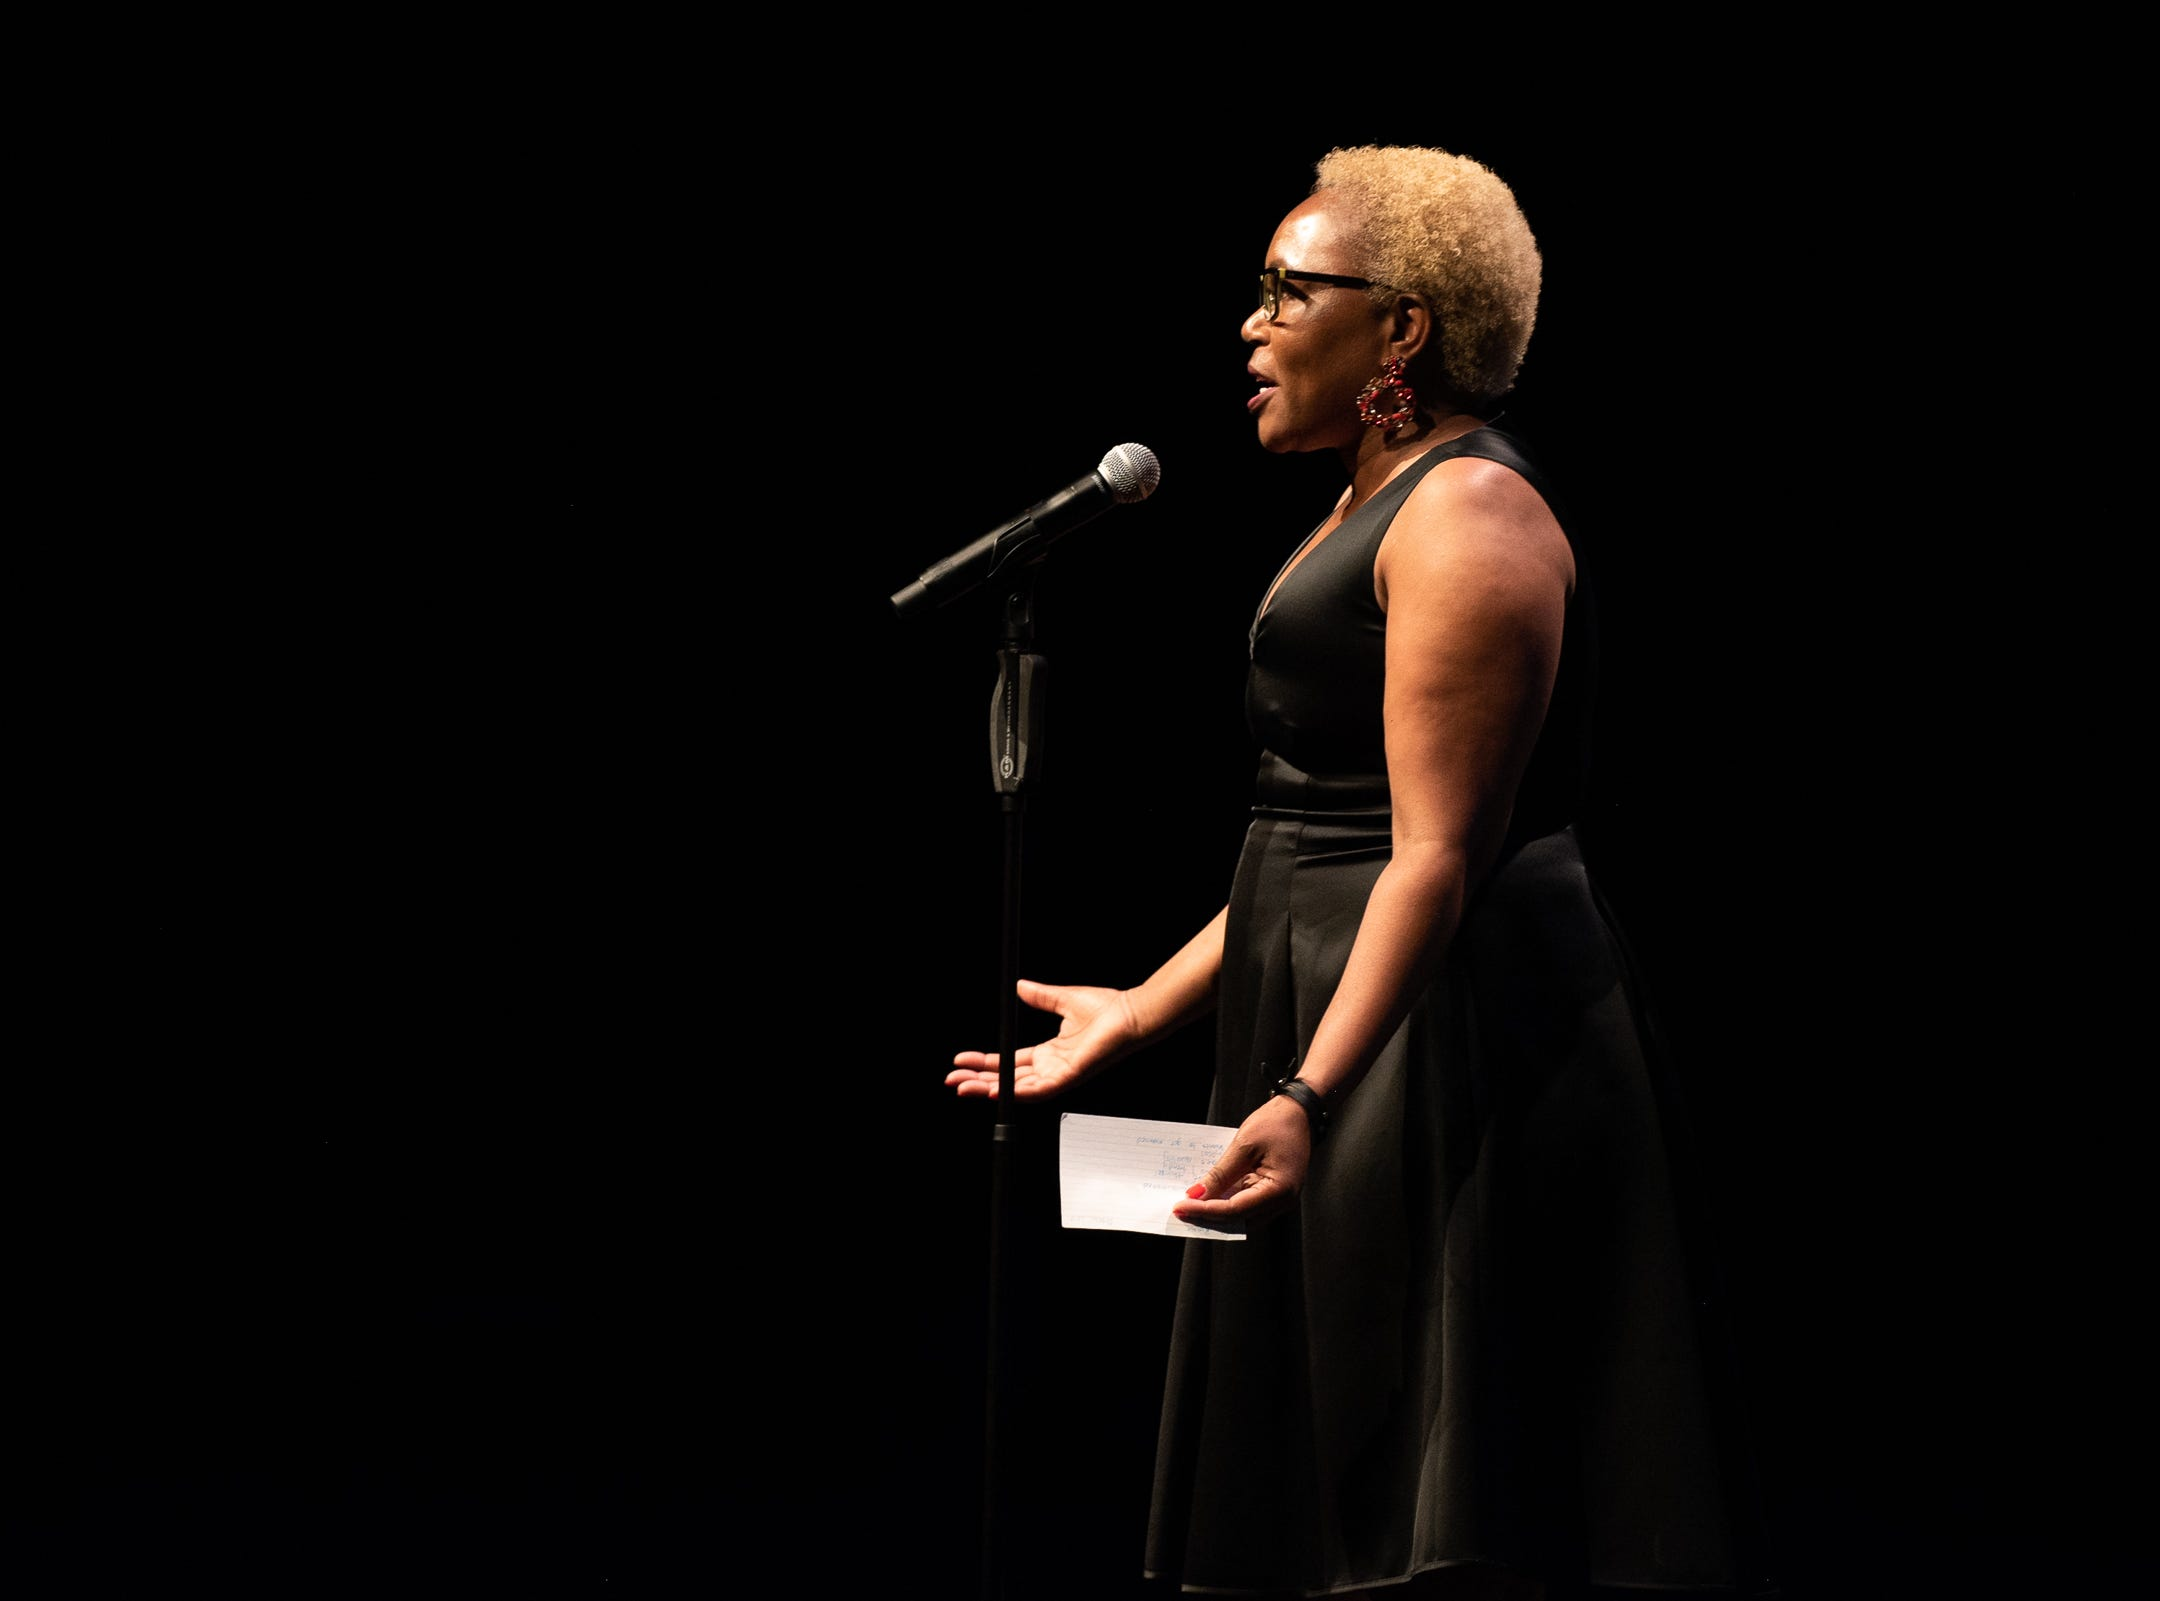 Kanu Jacobsen tells her tale of romance during The Storytellers Project presents Romance - or Not at the Scottsdale Center for Performing Arts on Wednesday, Feb. 13, 2019.